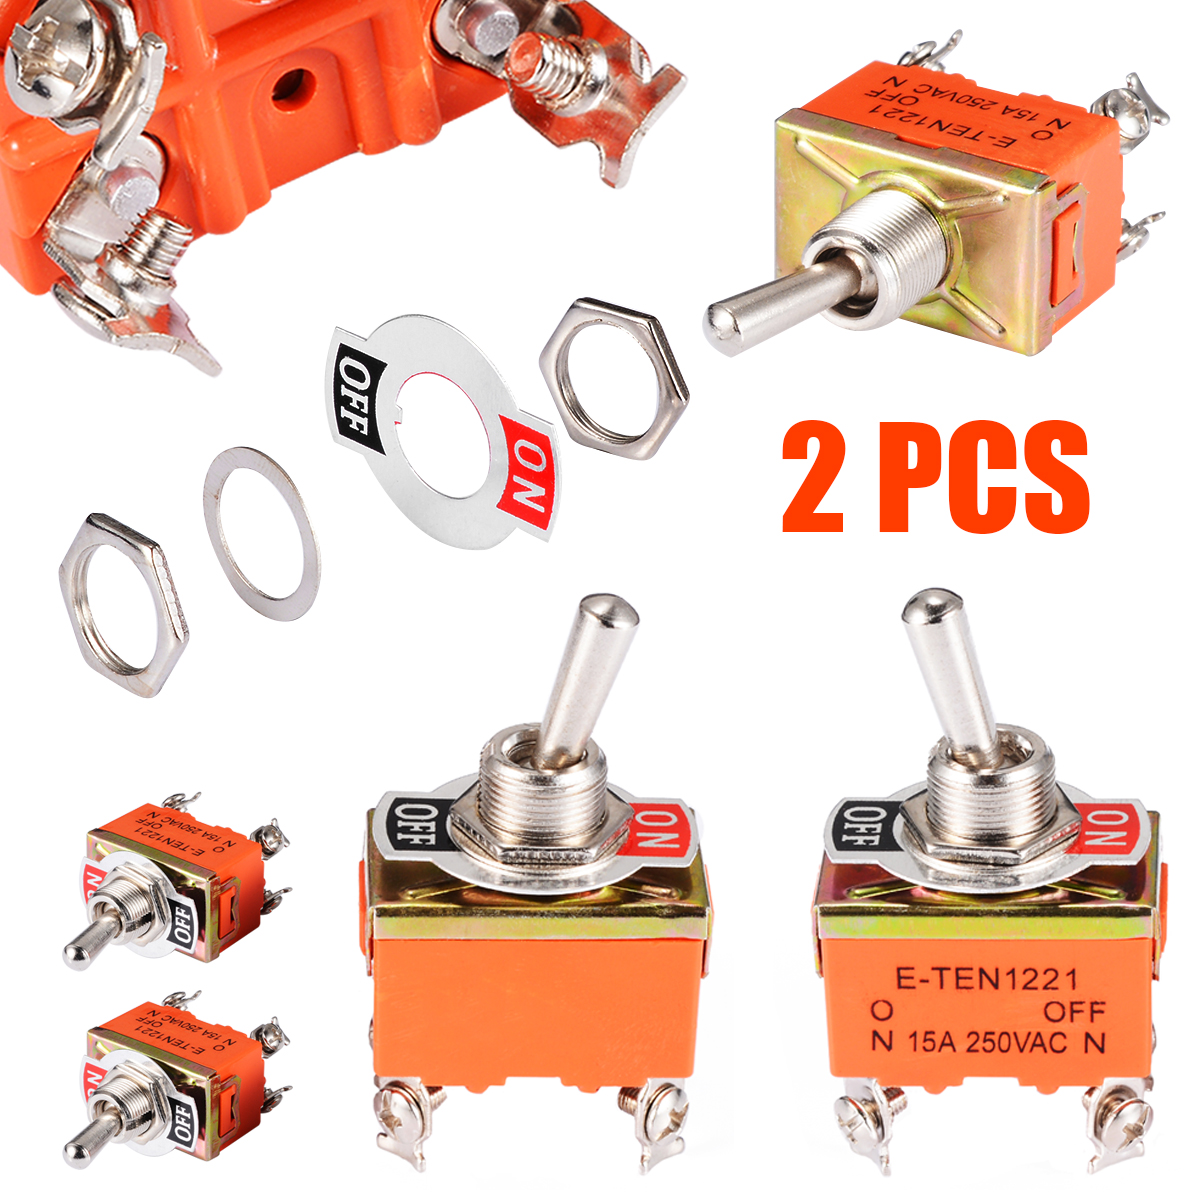 Switches Lights & Lighting Professional Sale Stainless Steel Waterproof Toggle Swith 12v Heavy Duty Toggle Flick Switch On Off On Car Metal Spdt Spst P0.05 15a 250v Terminal Reasonable Price